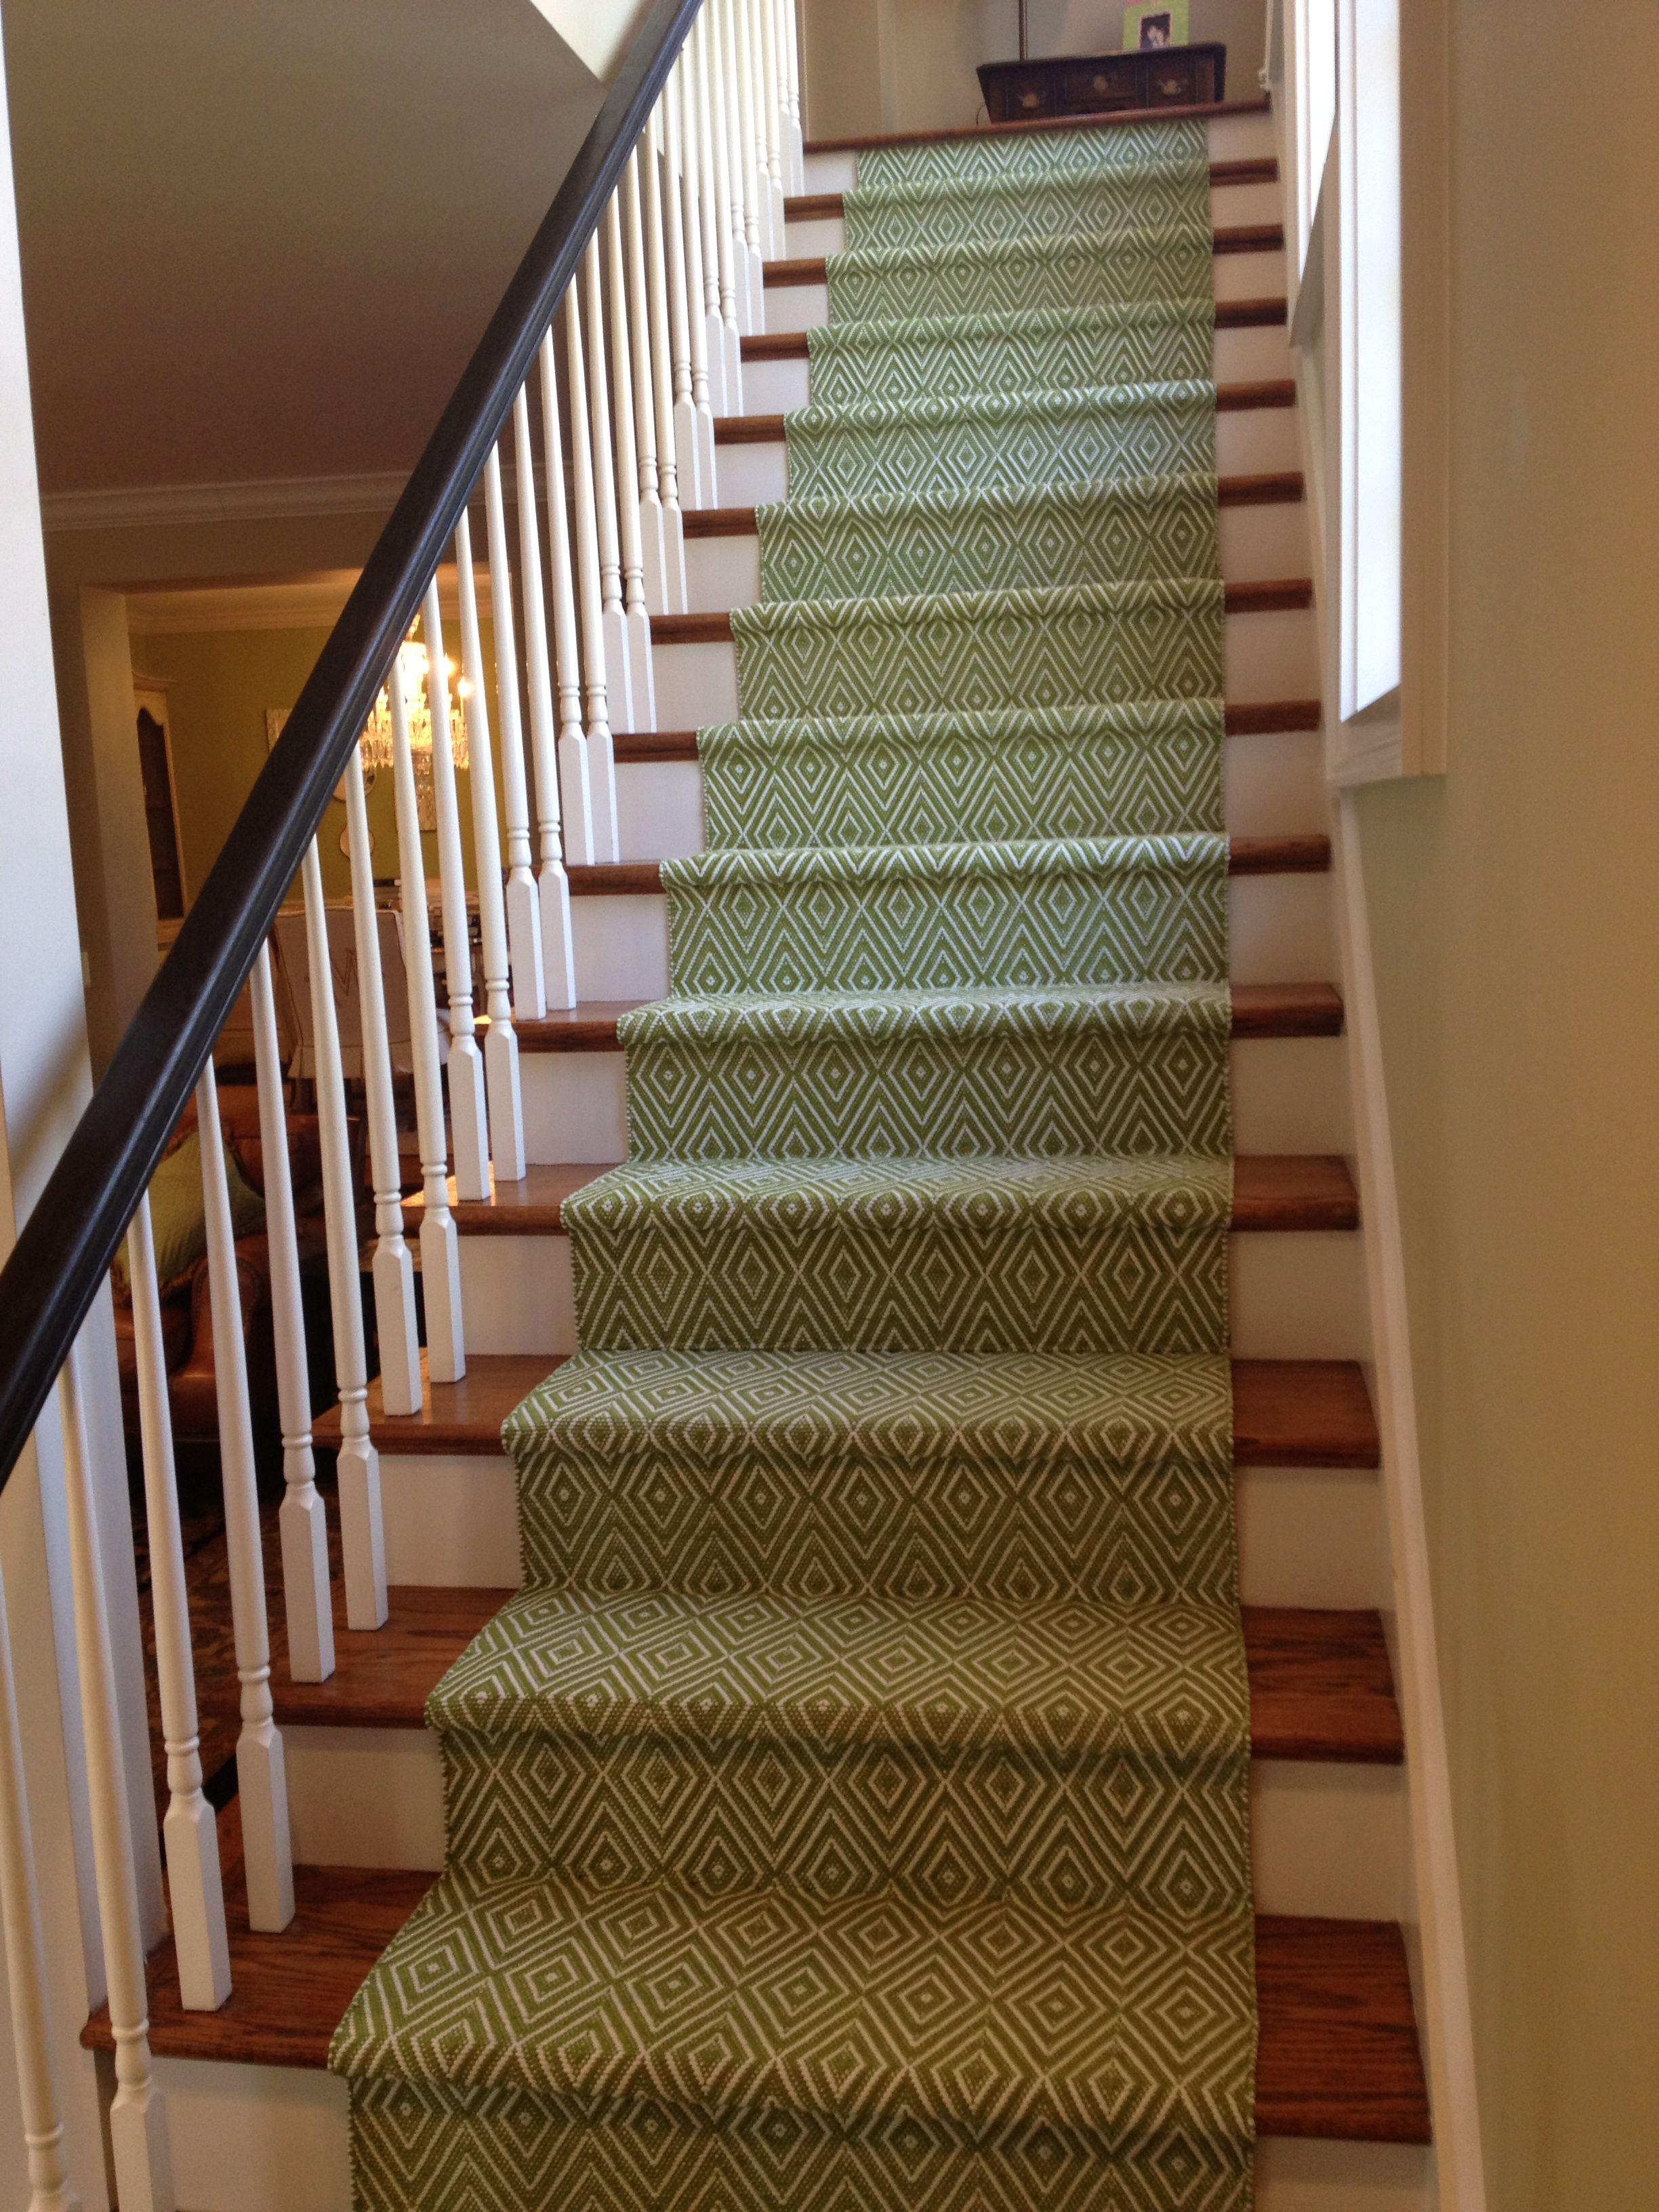 Pin By Brooks Mcelwain On My Own Projects Design And Parties | Running Carpet For Stairs | Stair Tread | Hardwood | Wood | Grey | Stair Runners